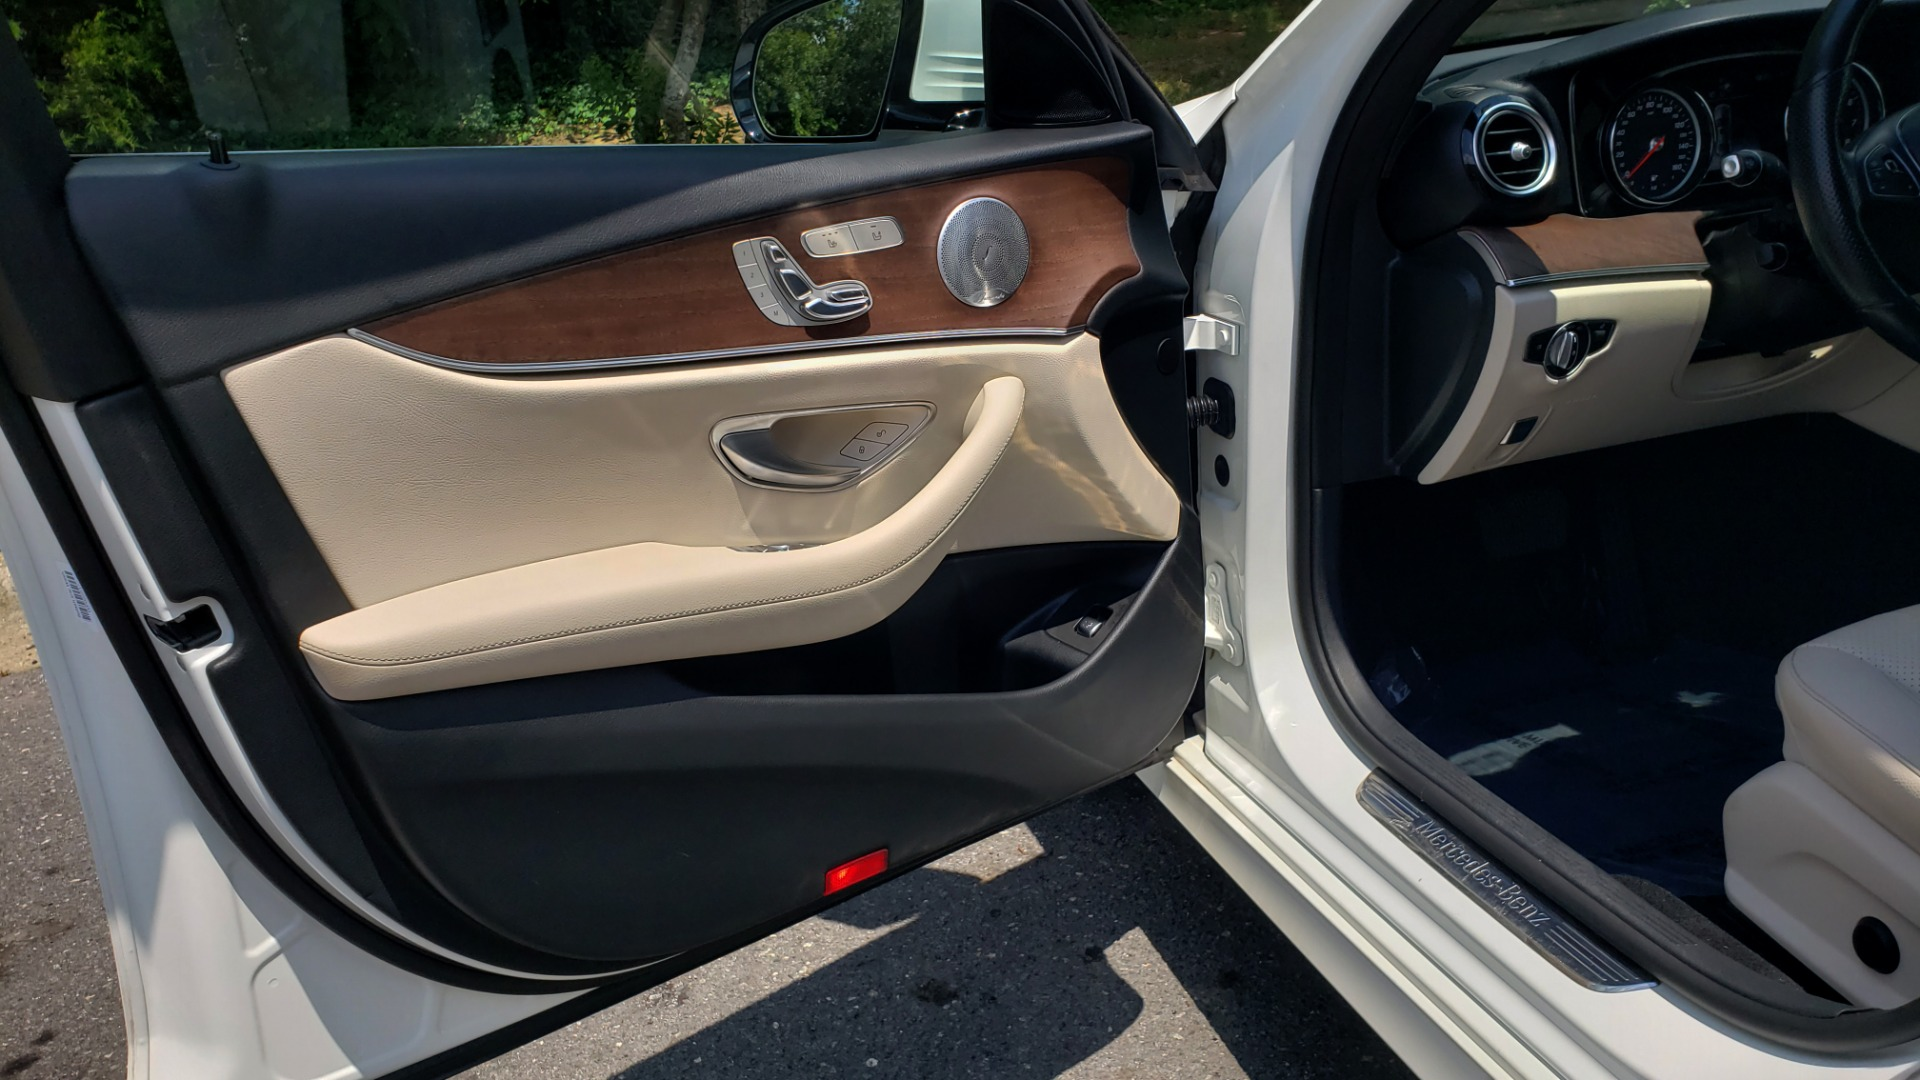 Used 2017 Mercedes-Benz E-CLASS E 300 PREMIUM / SPORT / NAV / SUNROOF / HTD STS / BSM / REARVIEW for sale $27,995 at Formula Imports in Charlotte NC 28227 27